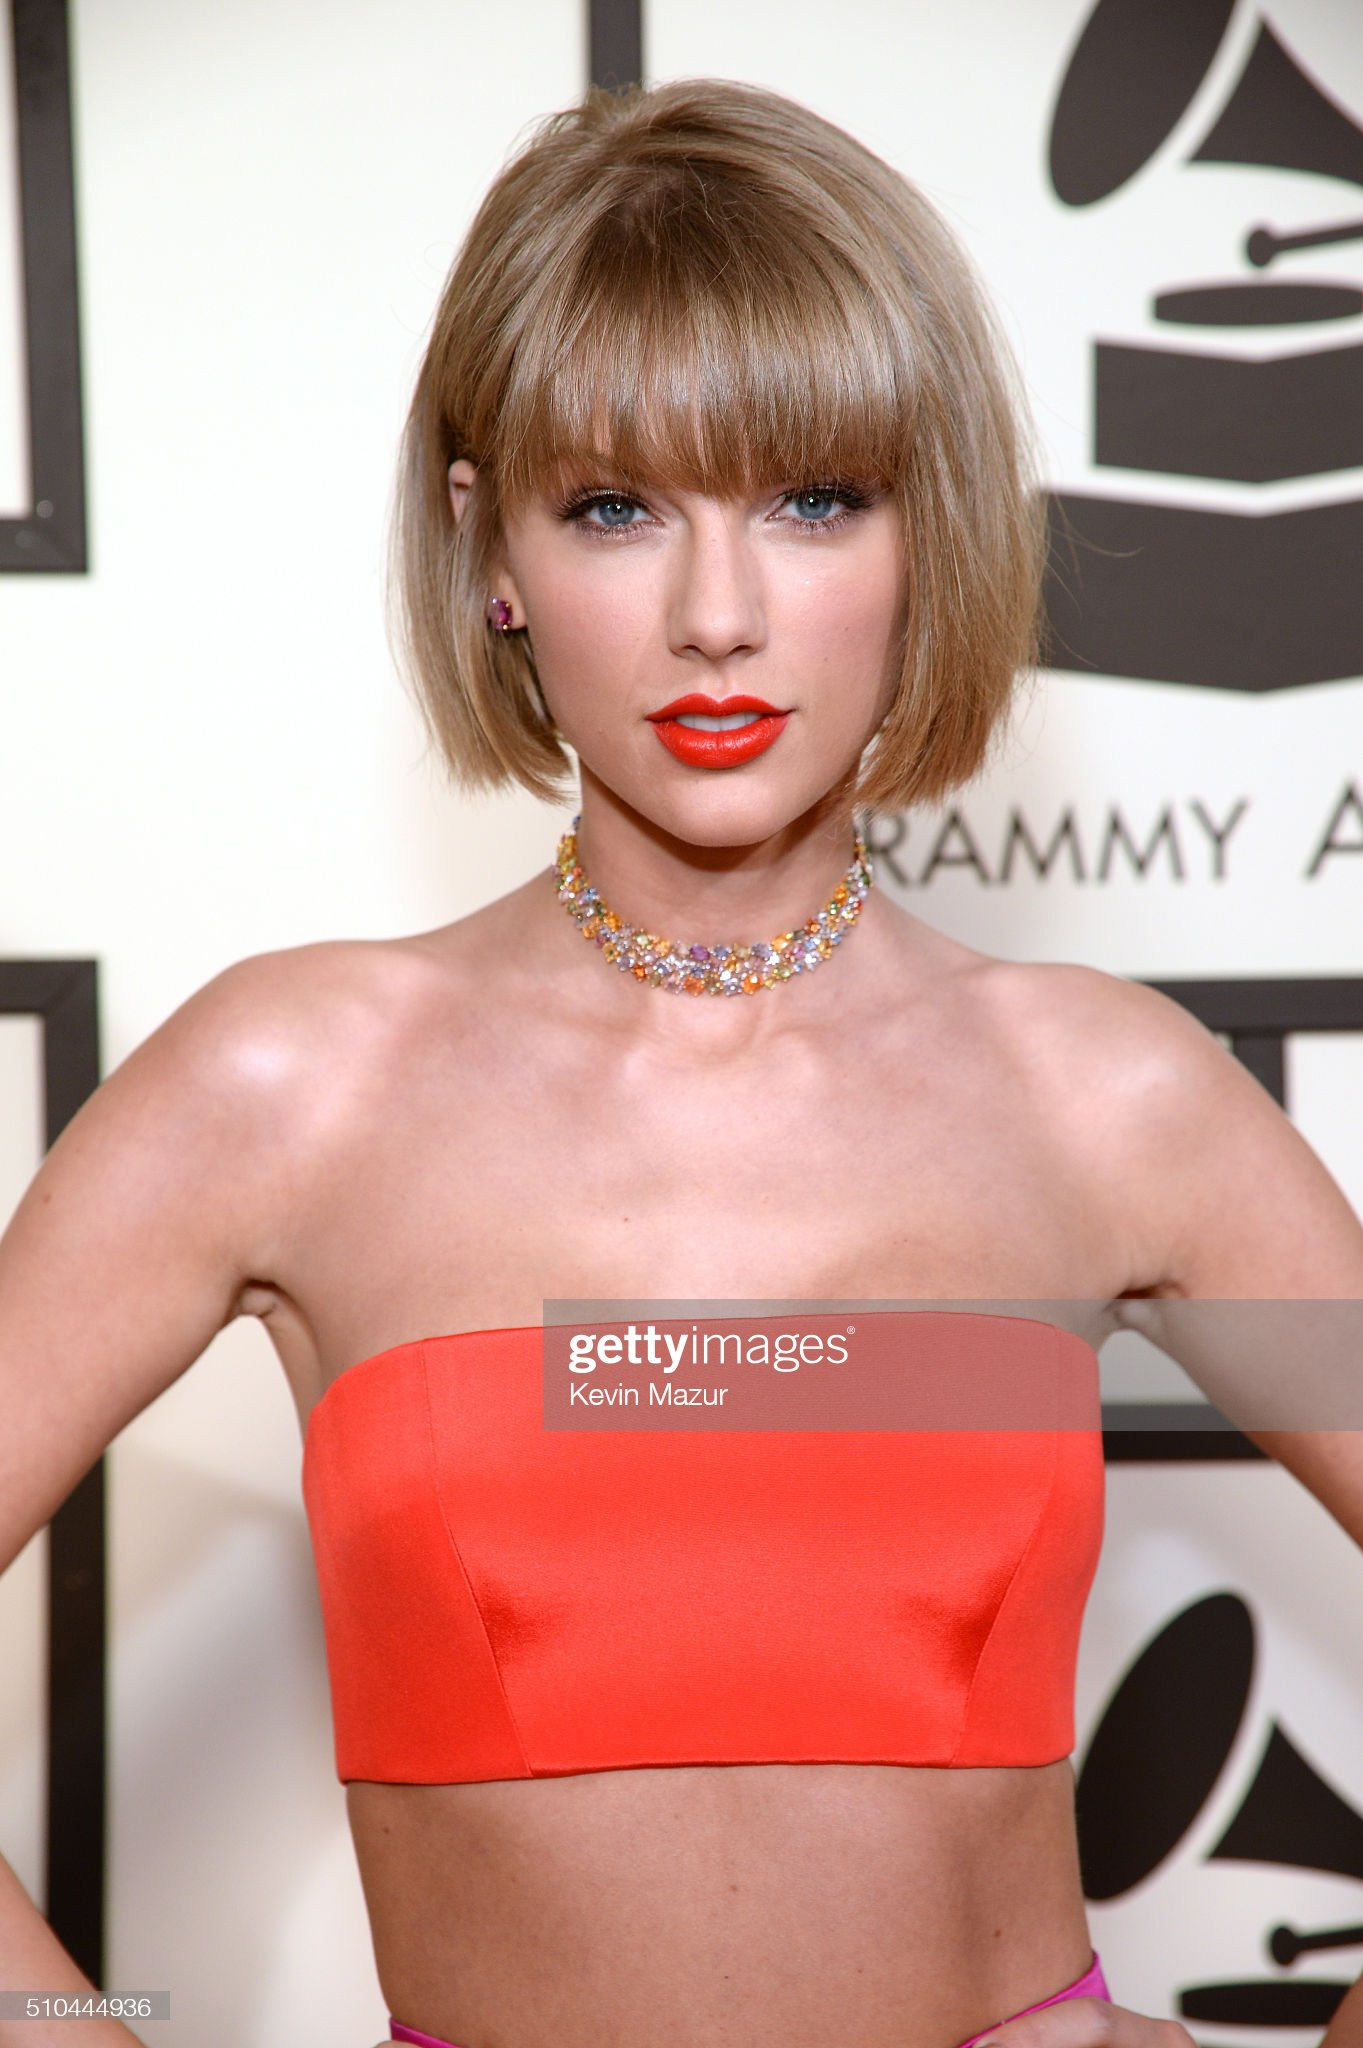 COLOR DE OJOS (clasificación y debate de personas famosas) Taylor-swift-attends-the-58th-grammy-awards-at-staples-center-on-15-picture-id510444936?s=2048x2048